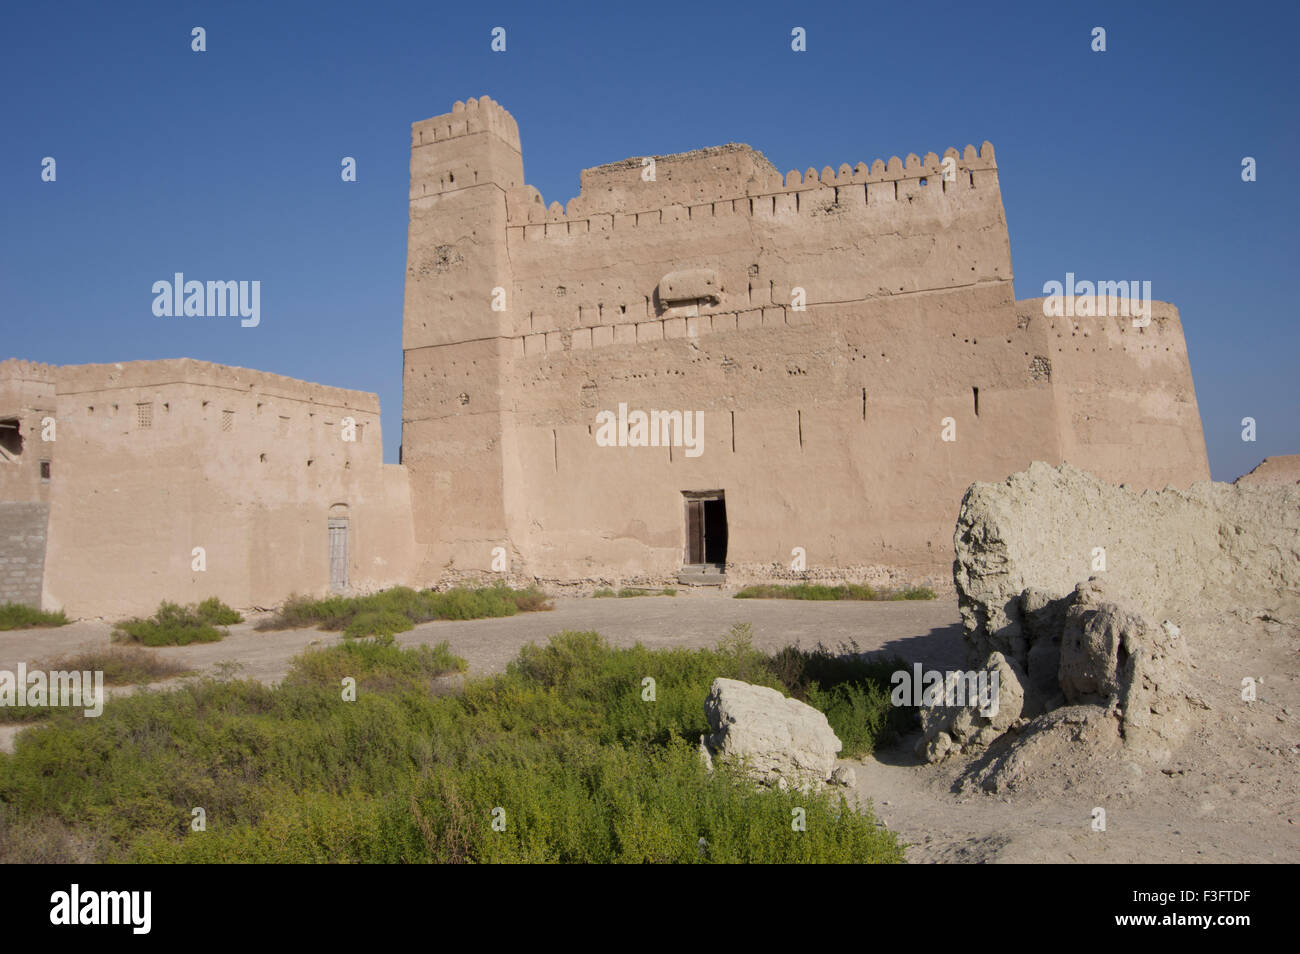 Ornate ancient adobe fortress in a town in the Sultanate of Oman, a safe, friendly Gulf State holiday destination Stock Photo